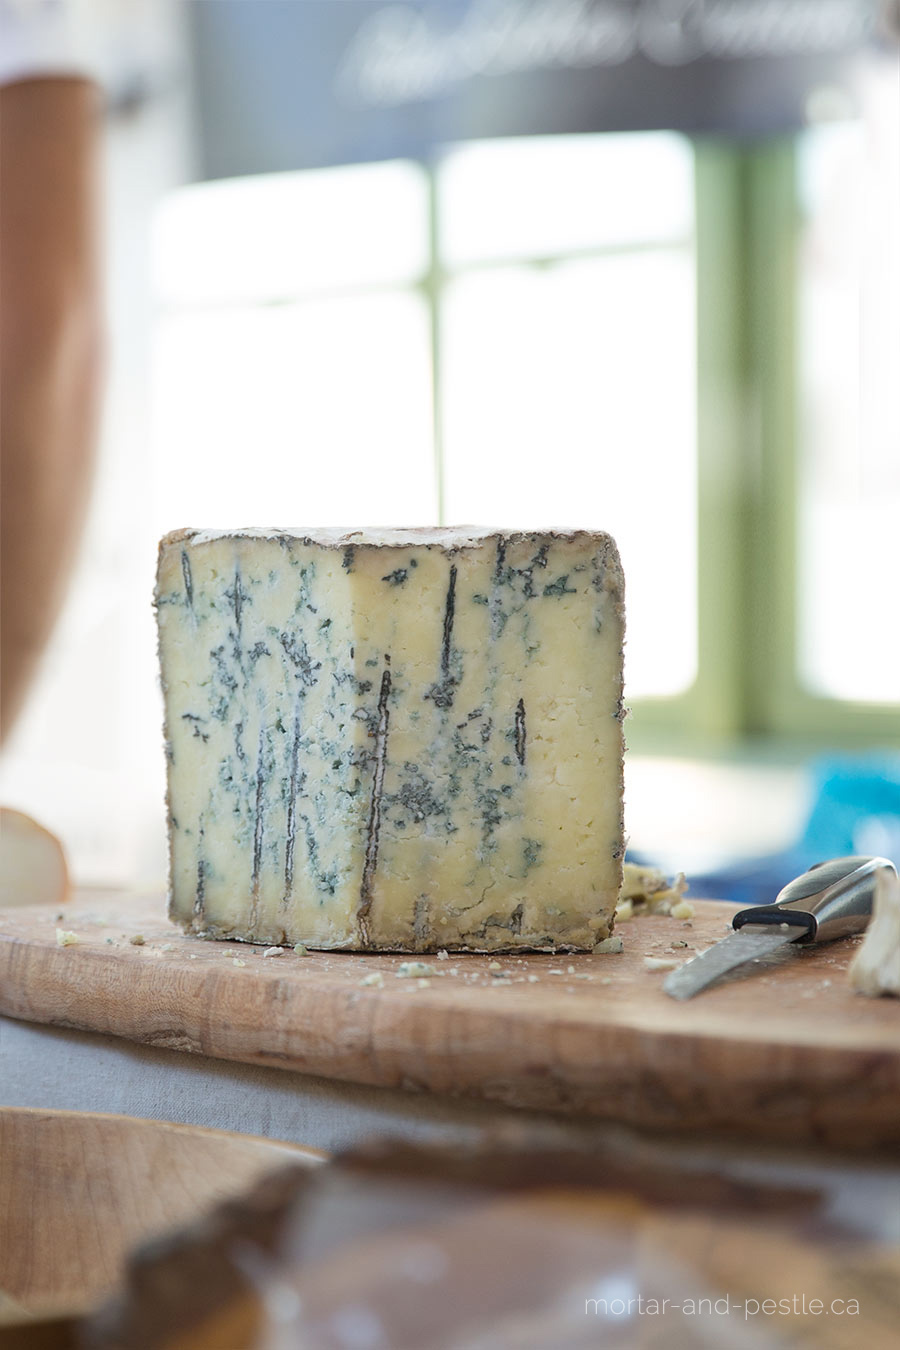 Highland Blue cheese from Back Forty Artisan Cheese.